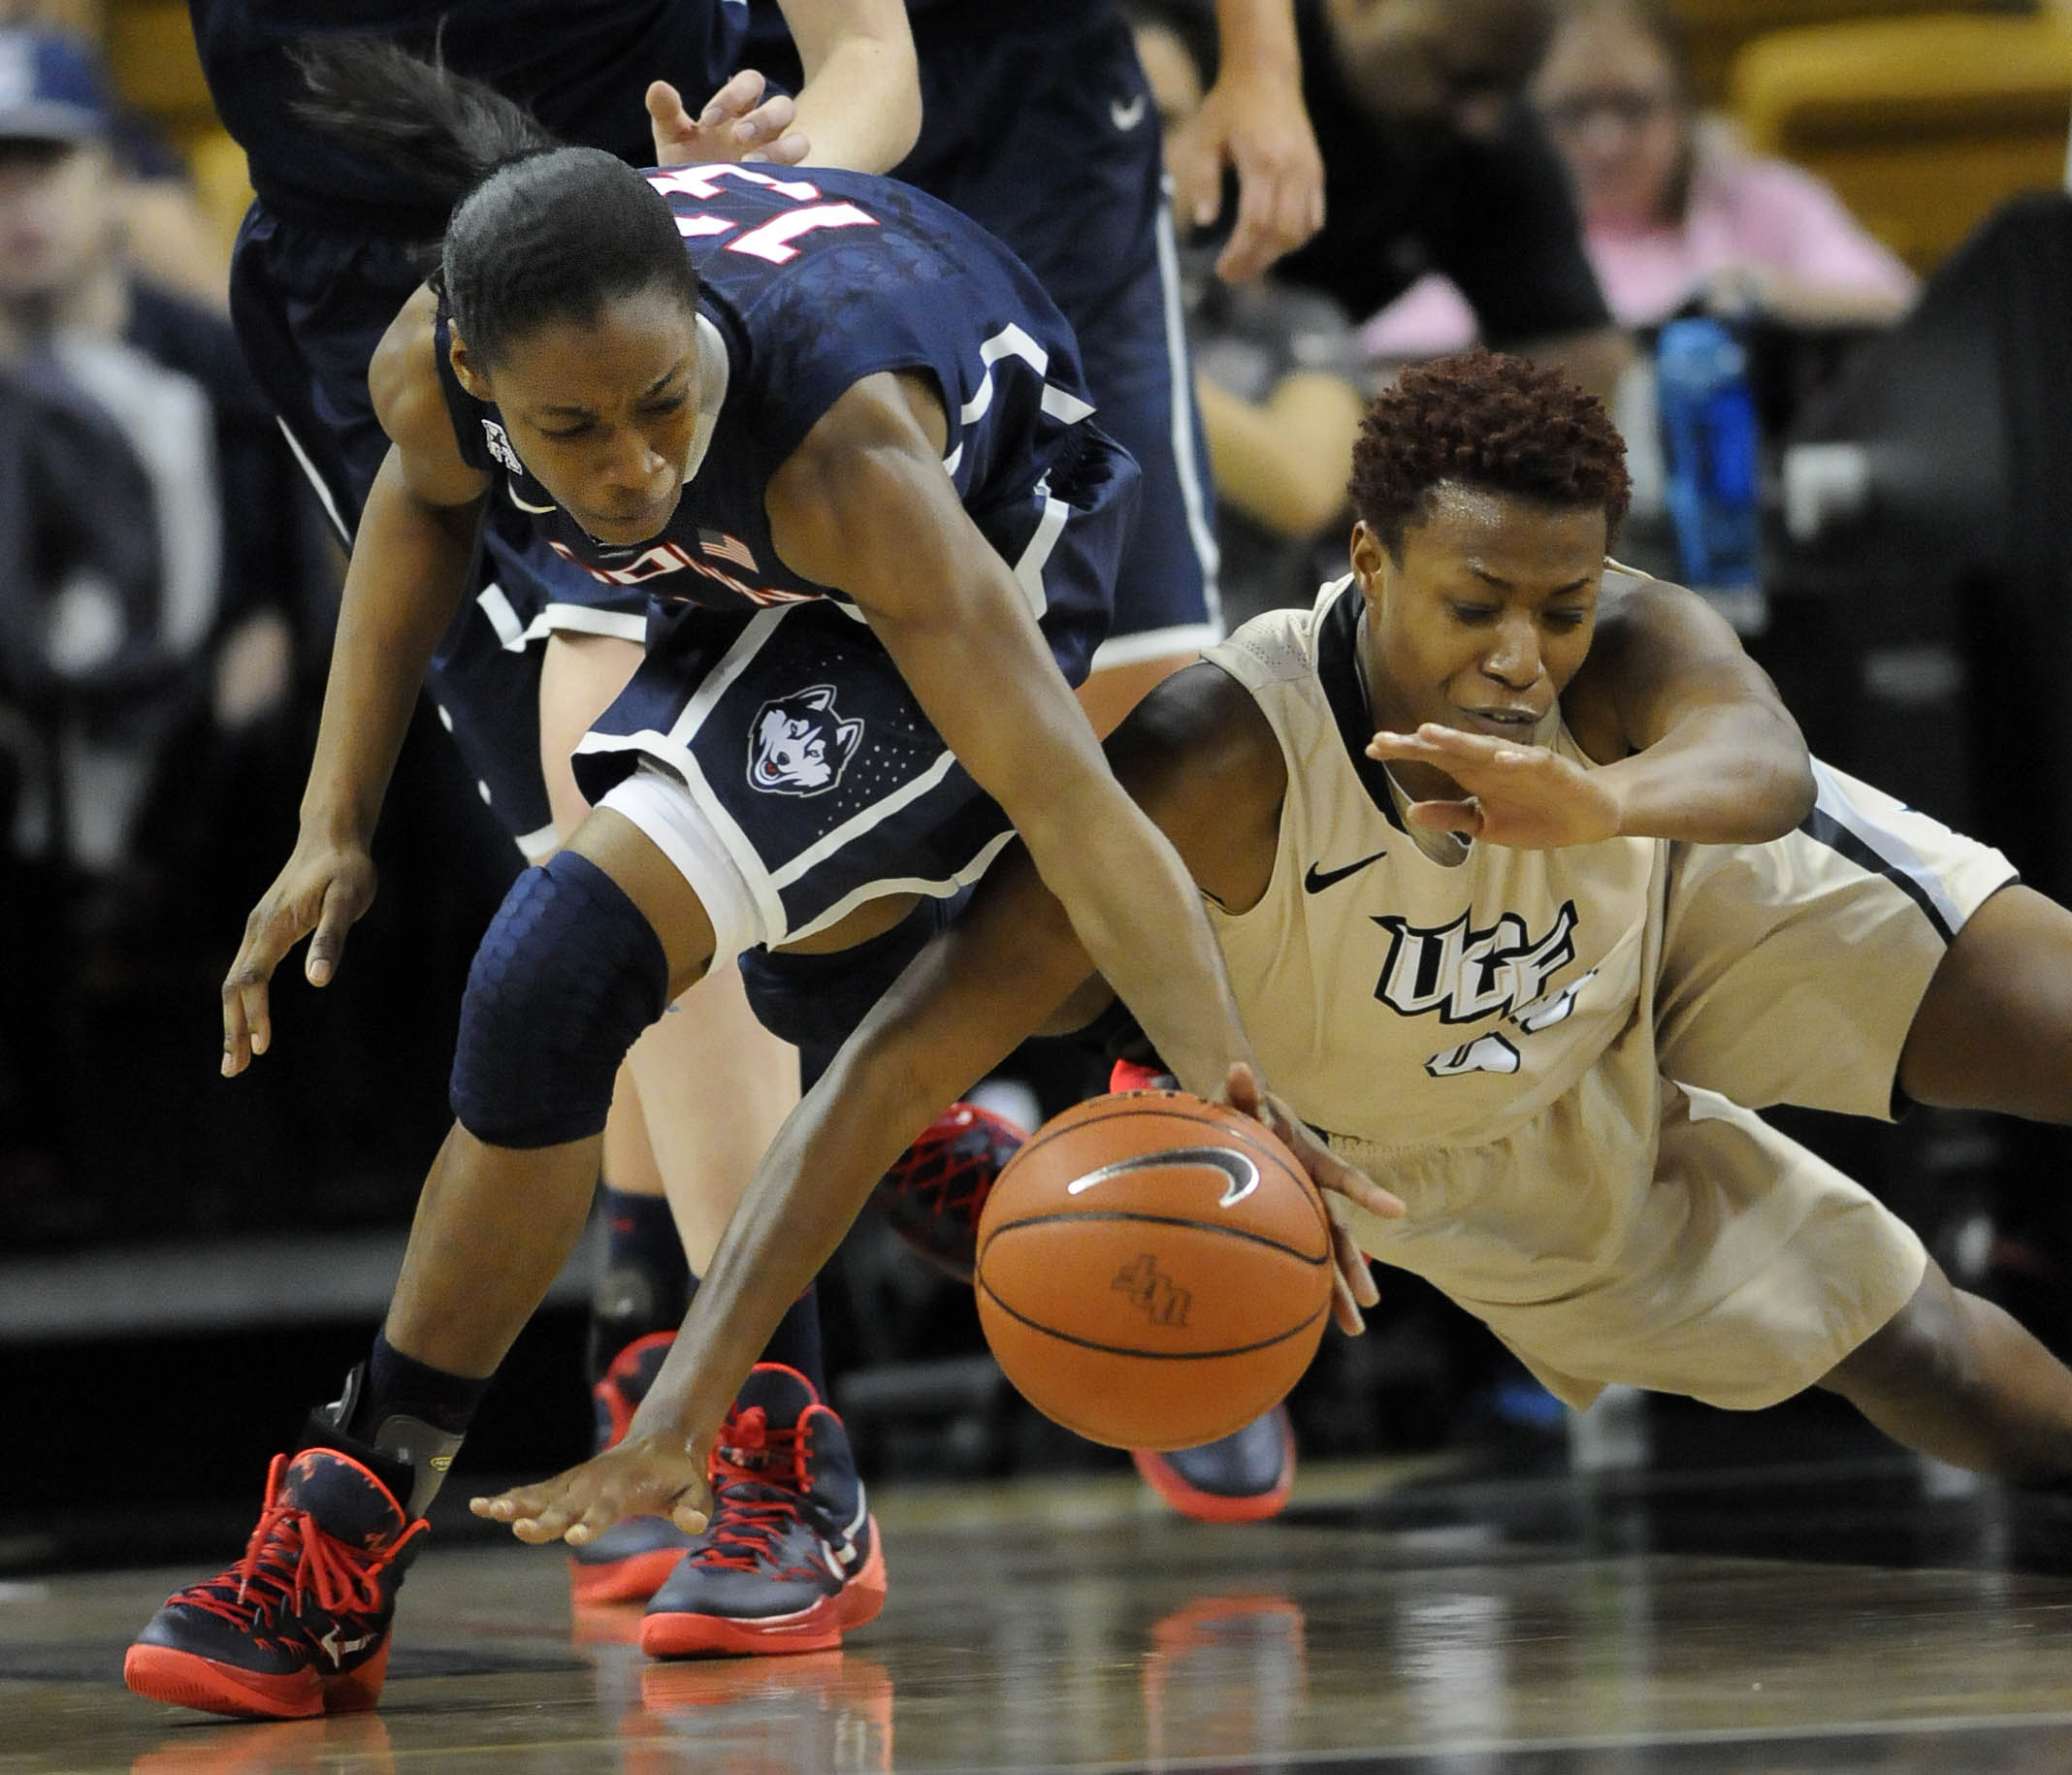 ORLANDO, FL 01/01/14 UConn Huskies guard Brianna Banks (13) grabs a loose ball from UCF Knights forward/center Erika Jones (55) in the first half against UCF at UCF Arena Wednesday.  UConn beat the Knights, 77-49. CLOE POISSON|cpoisson@couant.com